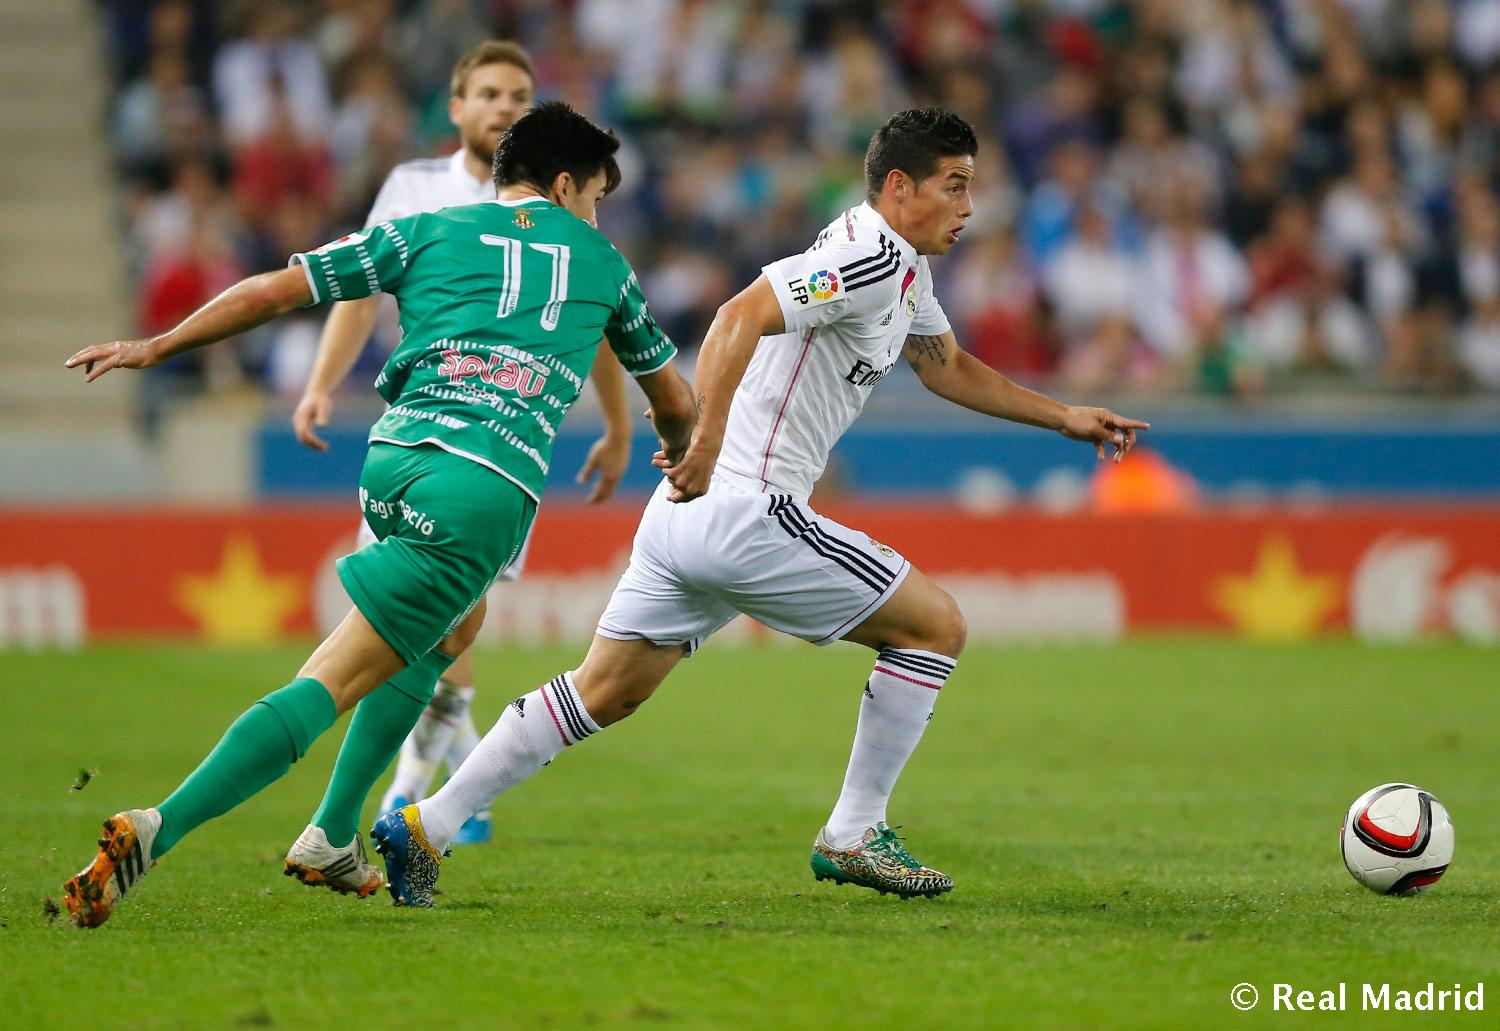 Real Madrid - Cornellà - Real Madrid - 29-10-2014